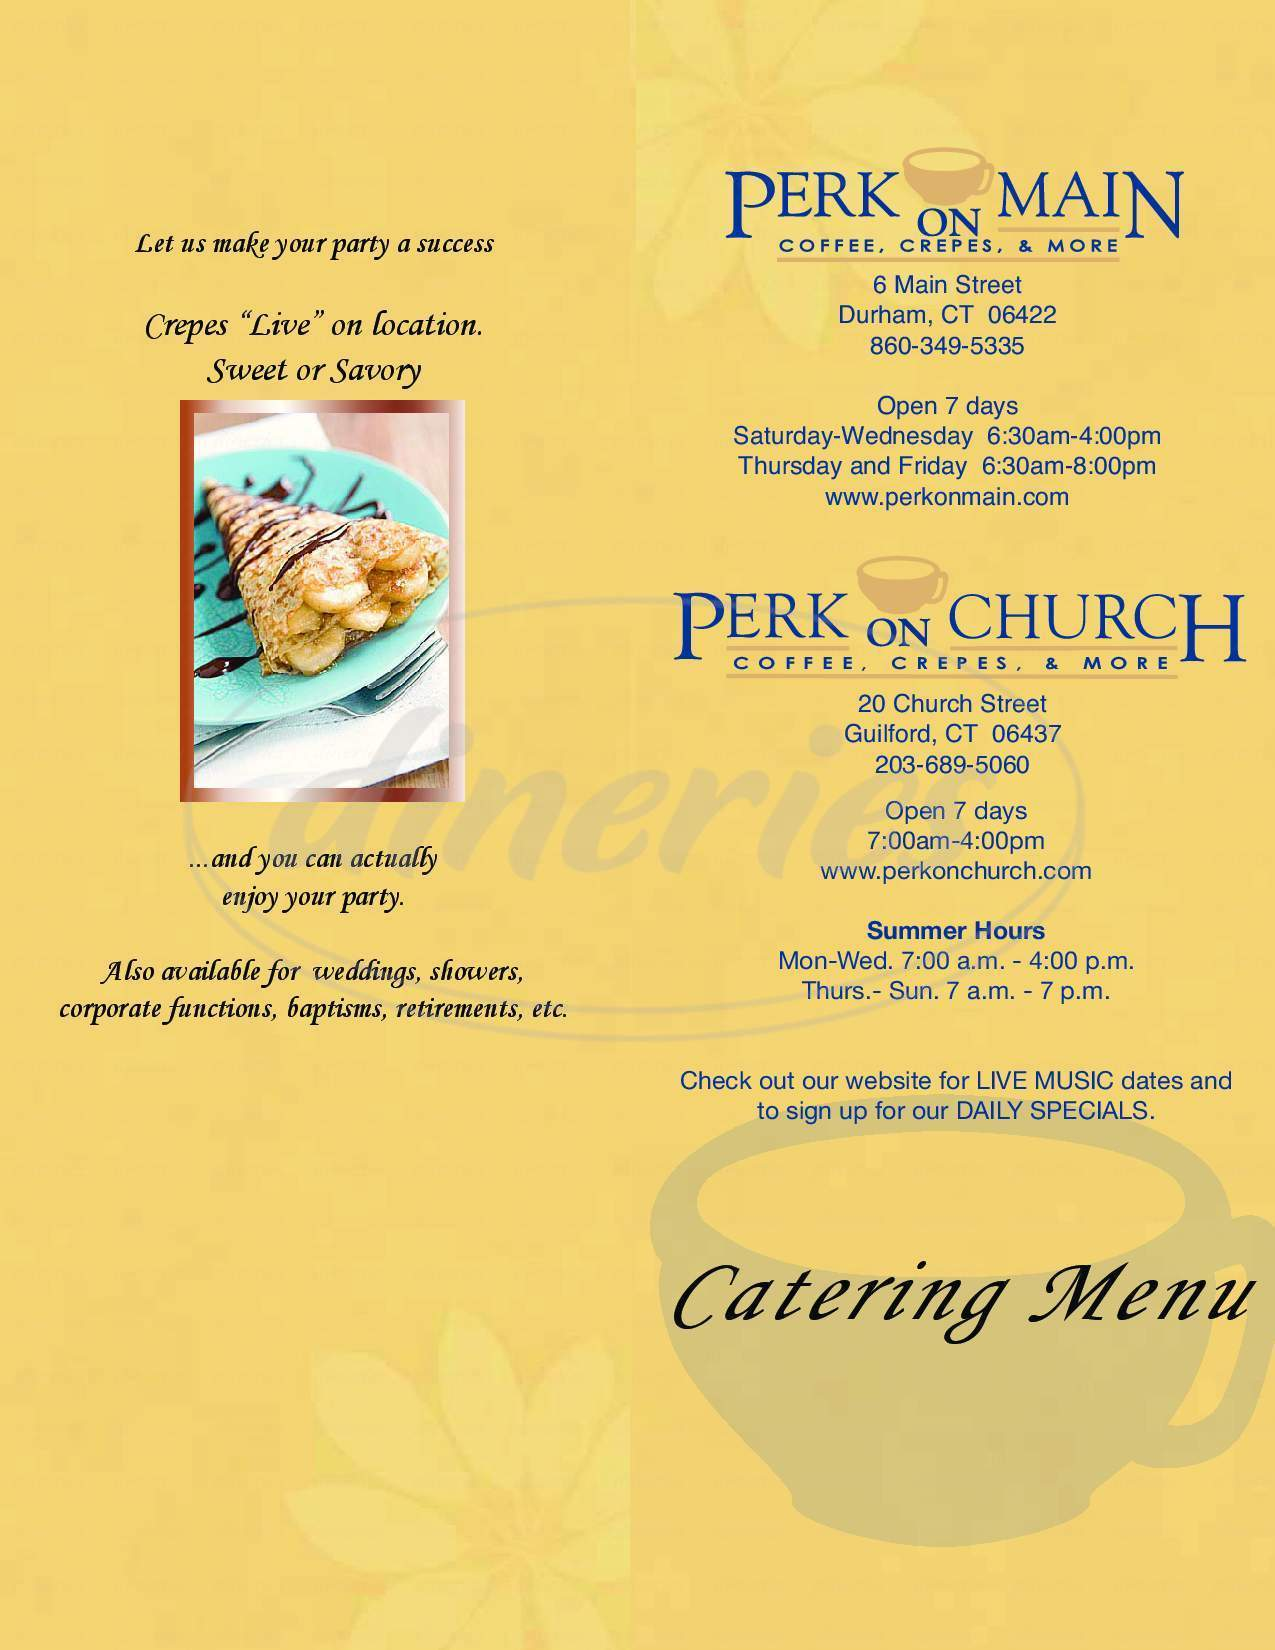 menu for Perk on Church